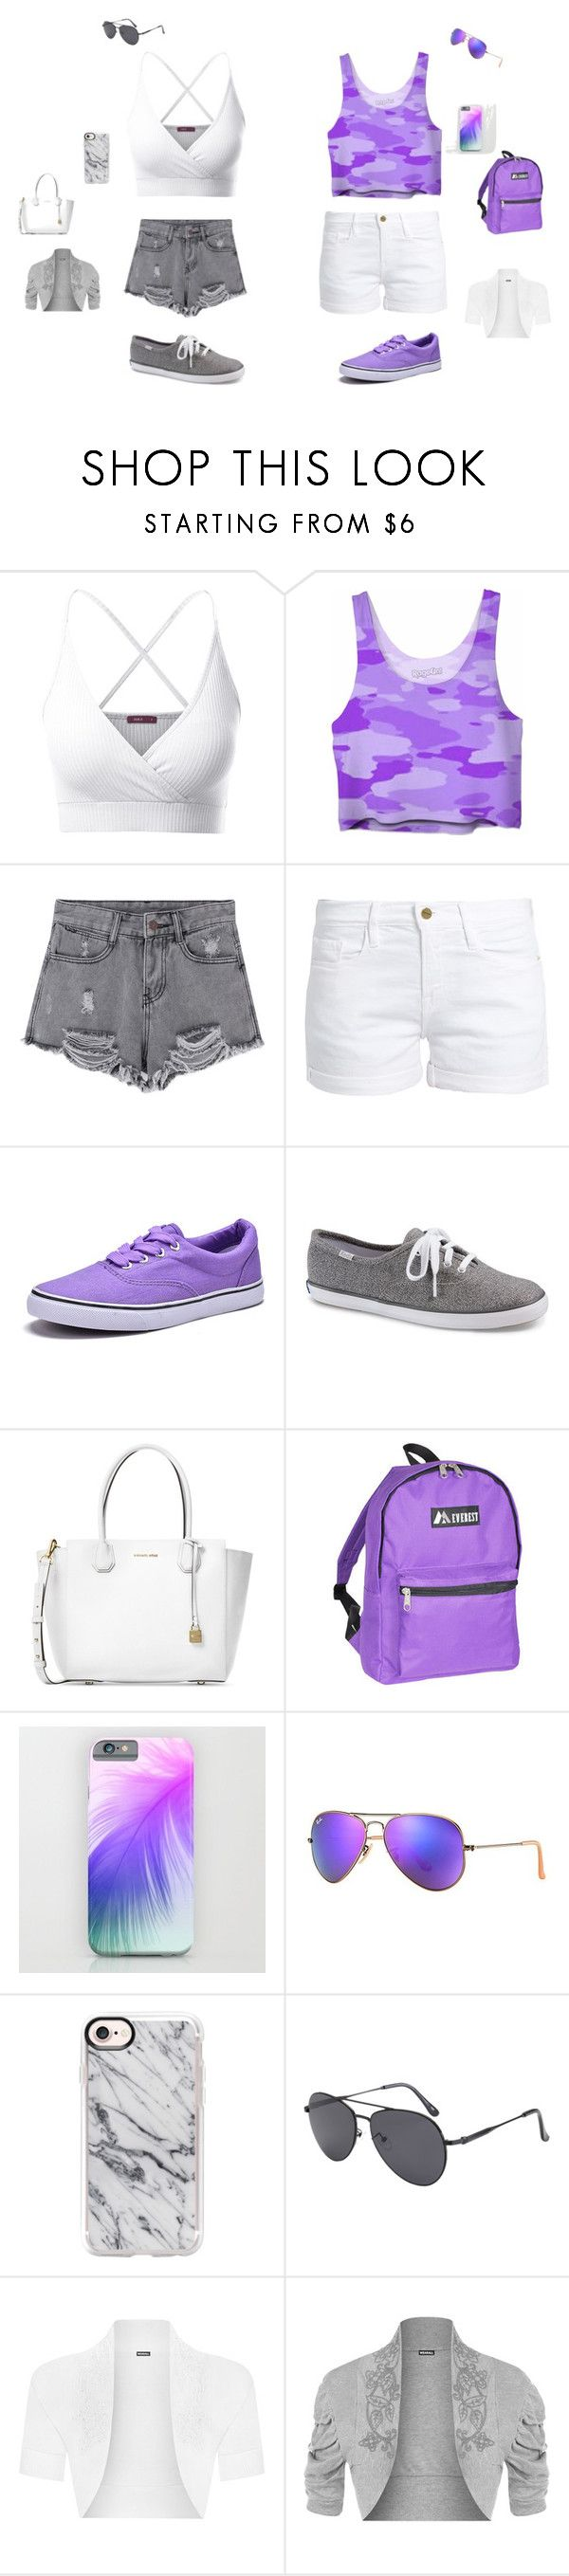 """Dames kleding"" by kleine-irma-van-zundert ❤ liked on Polyvore featuring Doublju, Frame, Dream Seek, Keds, Michael Kors, Everest, Ray-Ban, Casetify and WearAll"